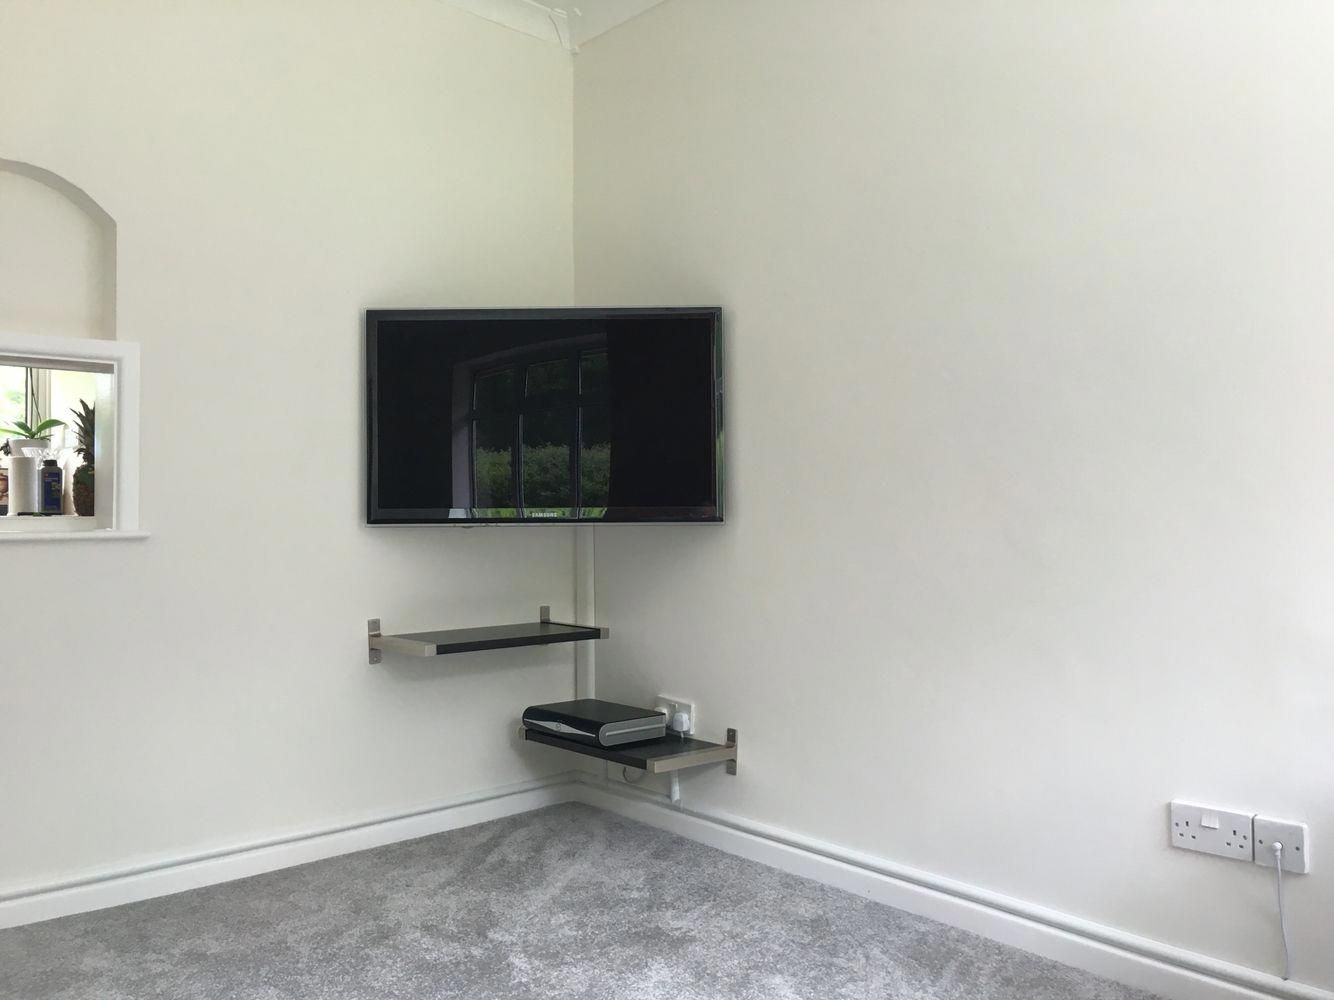 Corner Tv Mount And Floating Shelves Quite Pleased With The Final